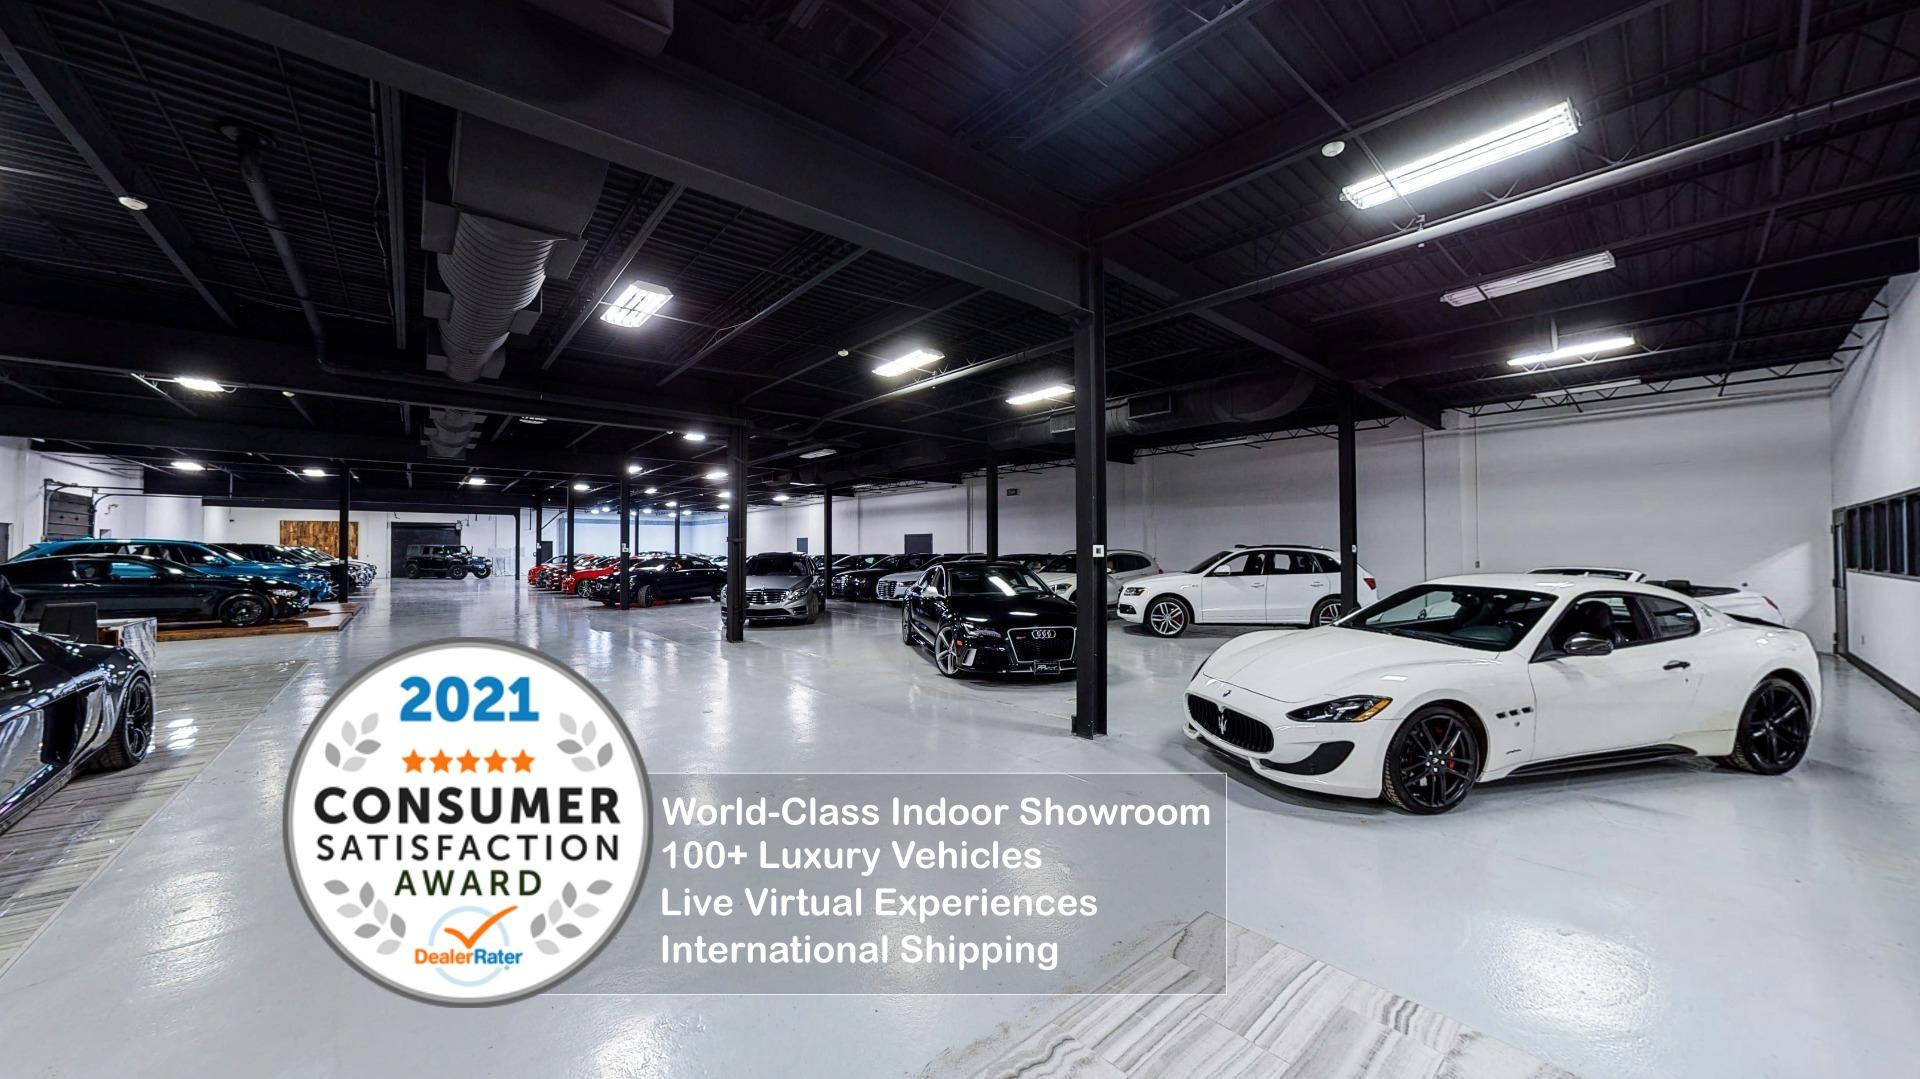 Used 2005 Mercedes-Benz CLK CLK 320 for sale $11,955 at Perfect Auto Collection in Akron OH 44310 3